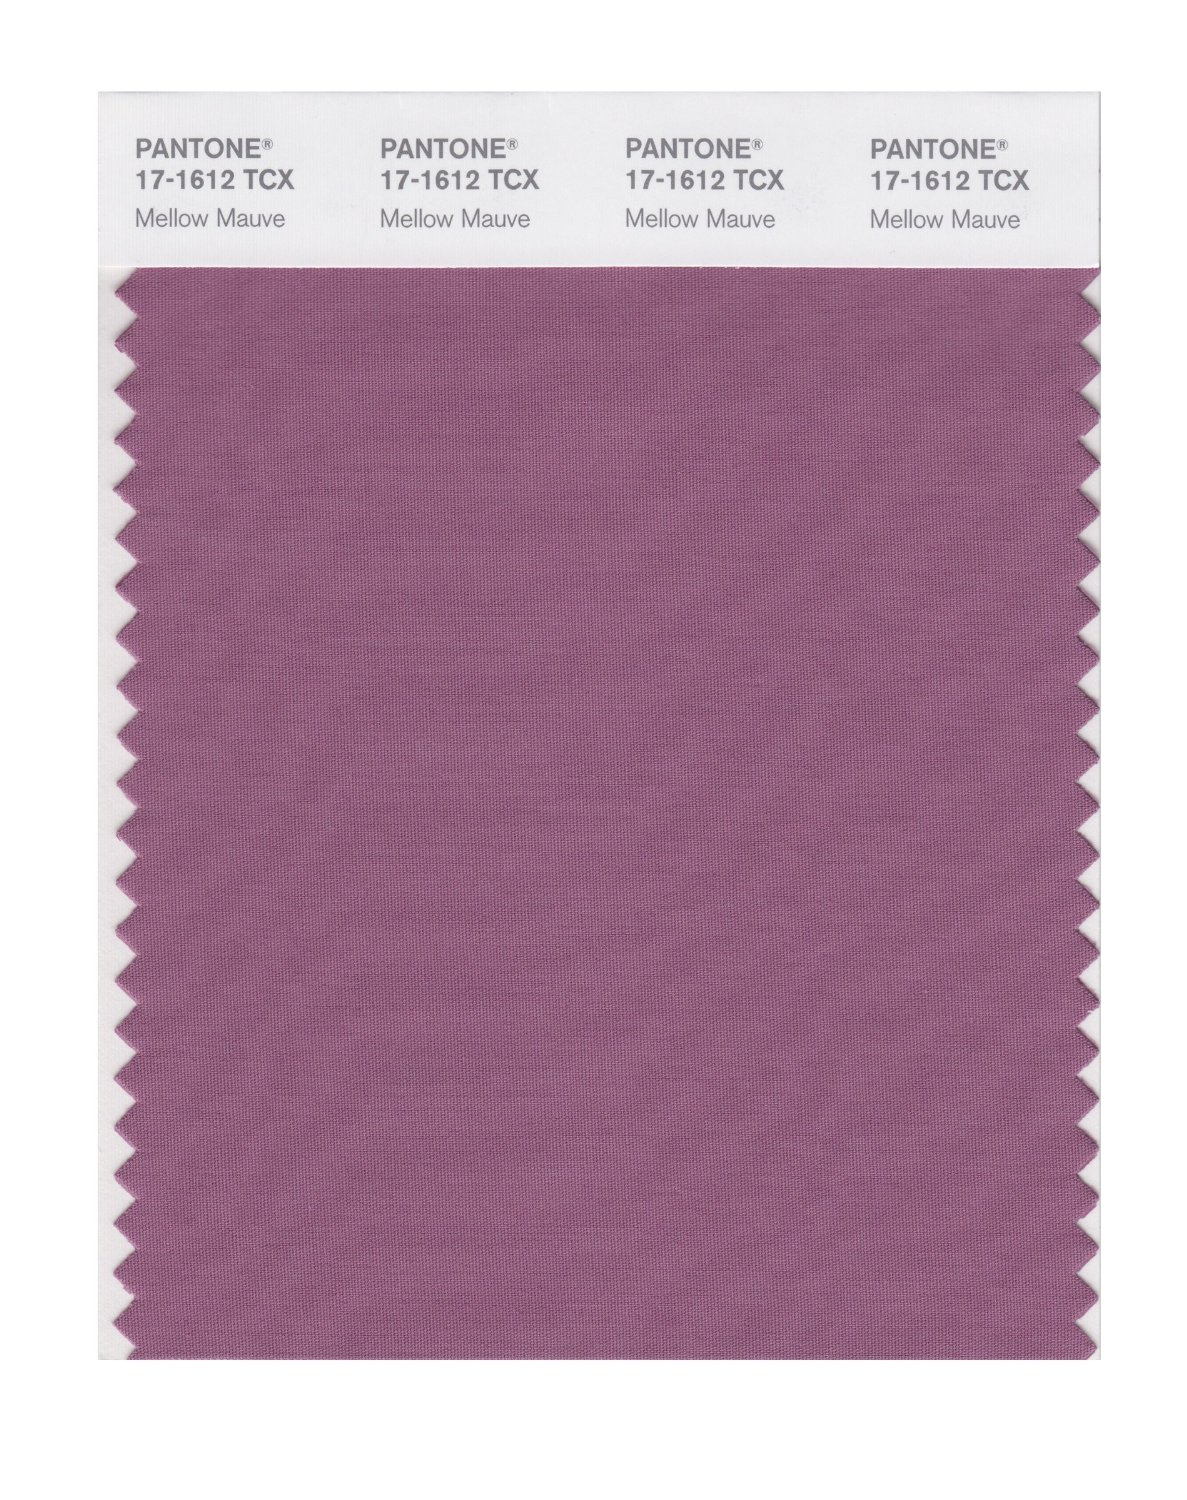 Pantone Smart Swatch 17-1612 Mellow Mauve